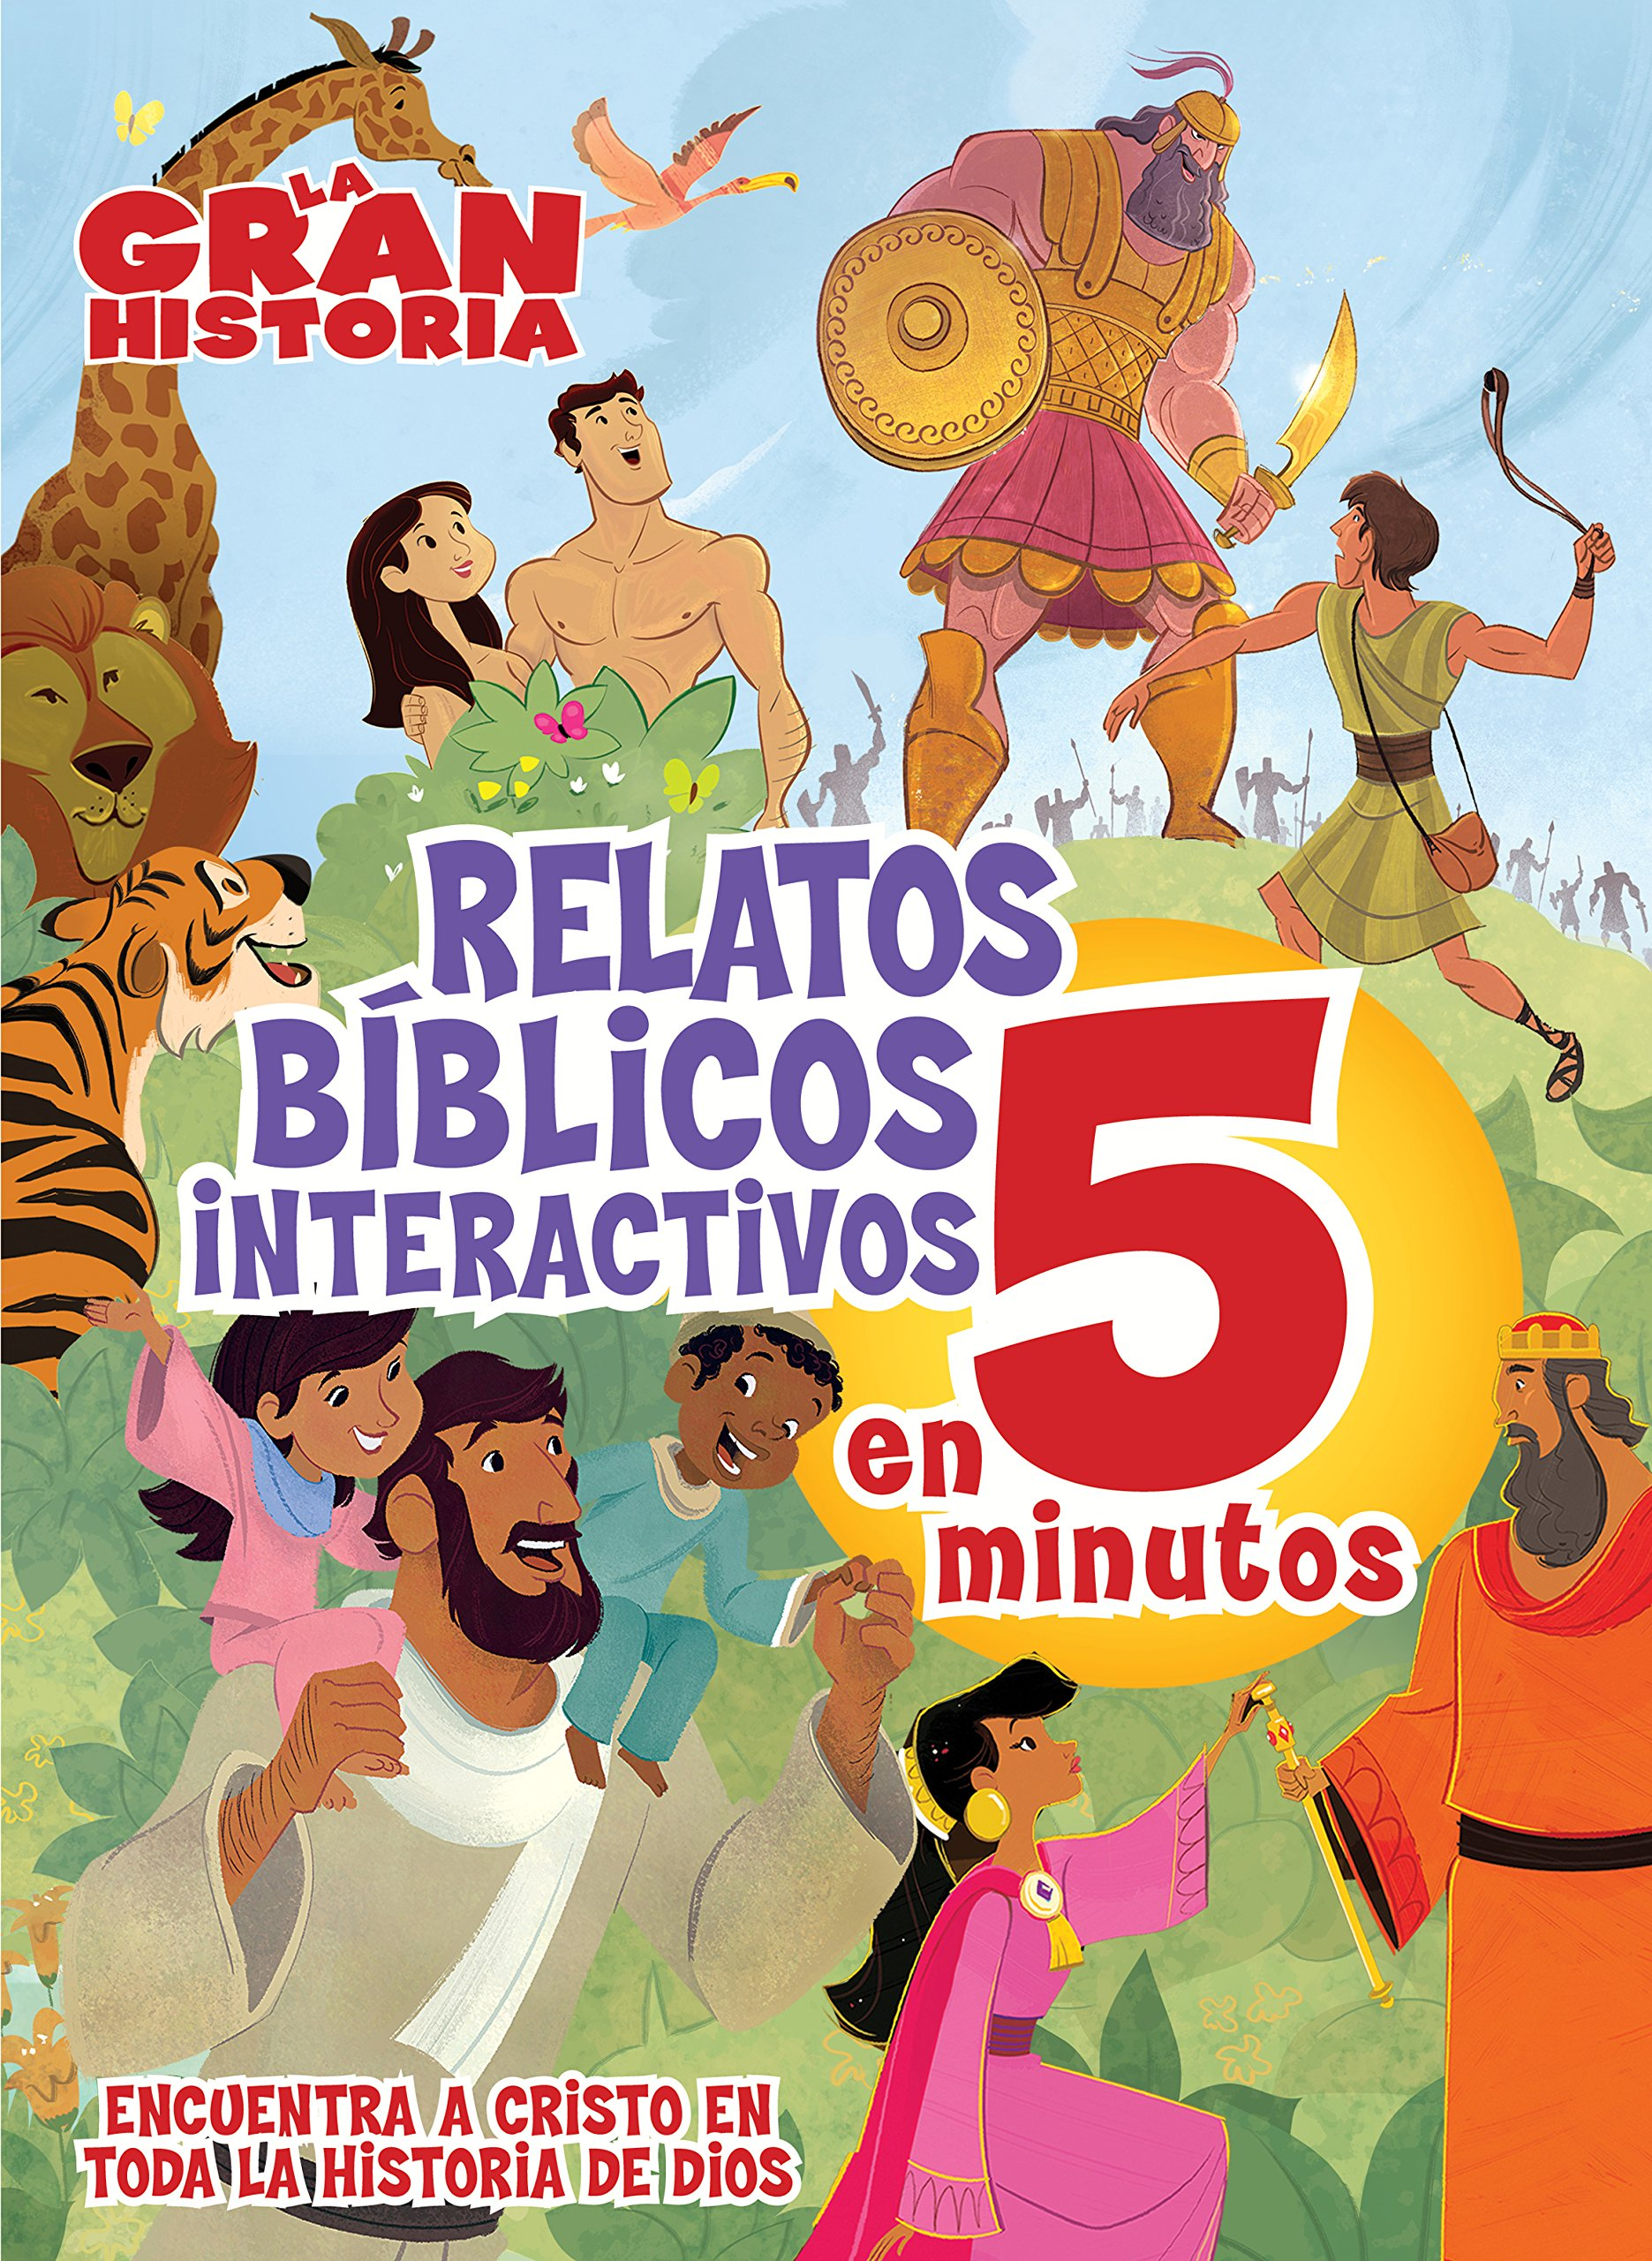 La Gran Historia, Relatos Bíblicos en 5 minutos, tapa dura (The Gospel Project) (Spanish Edition) pdf epub